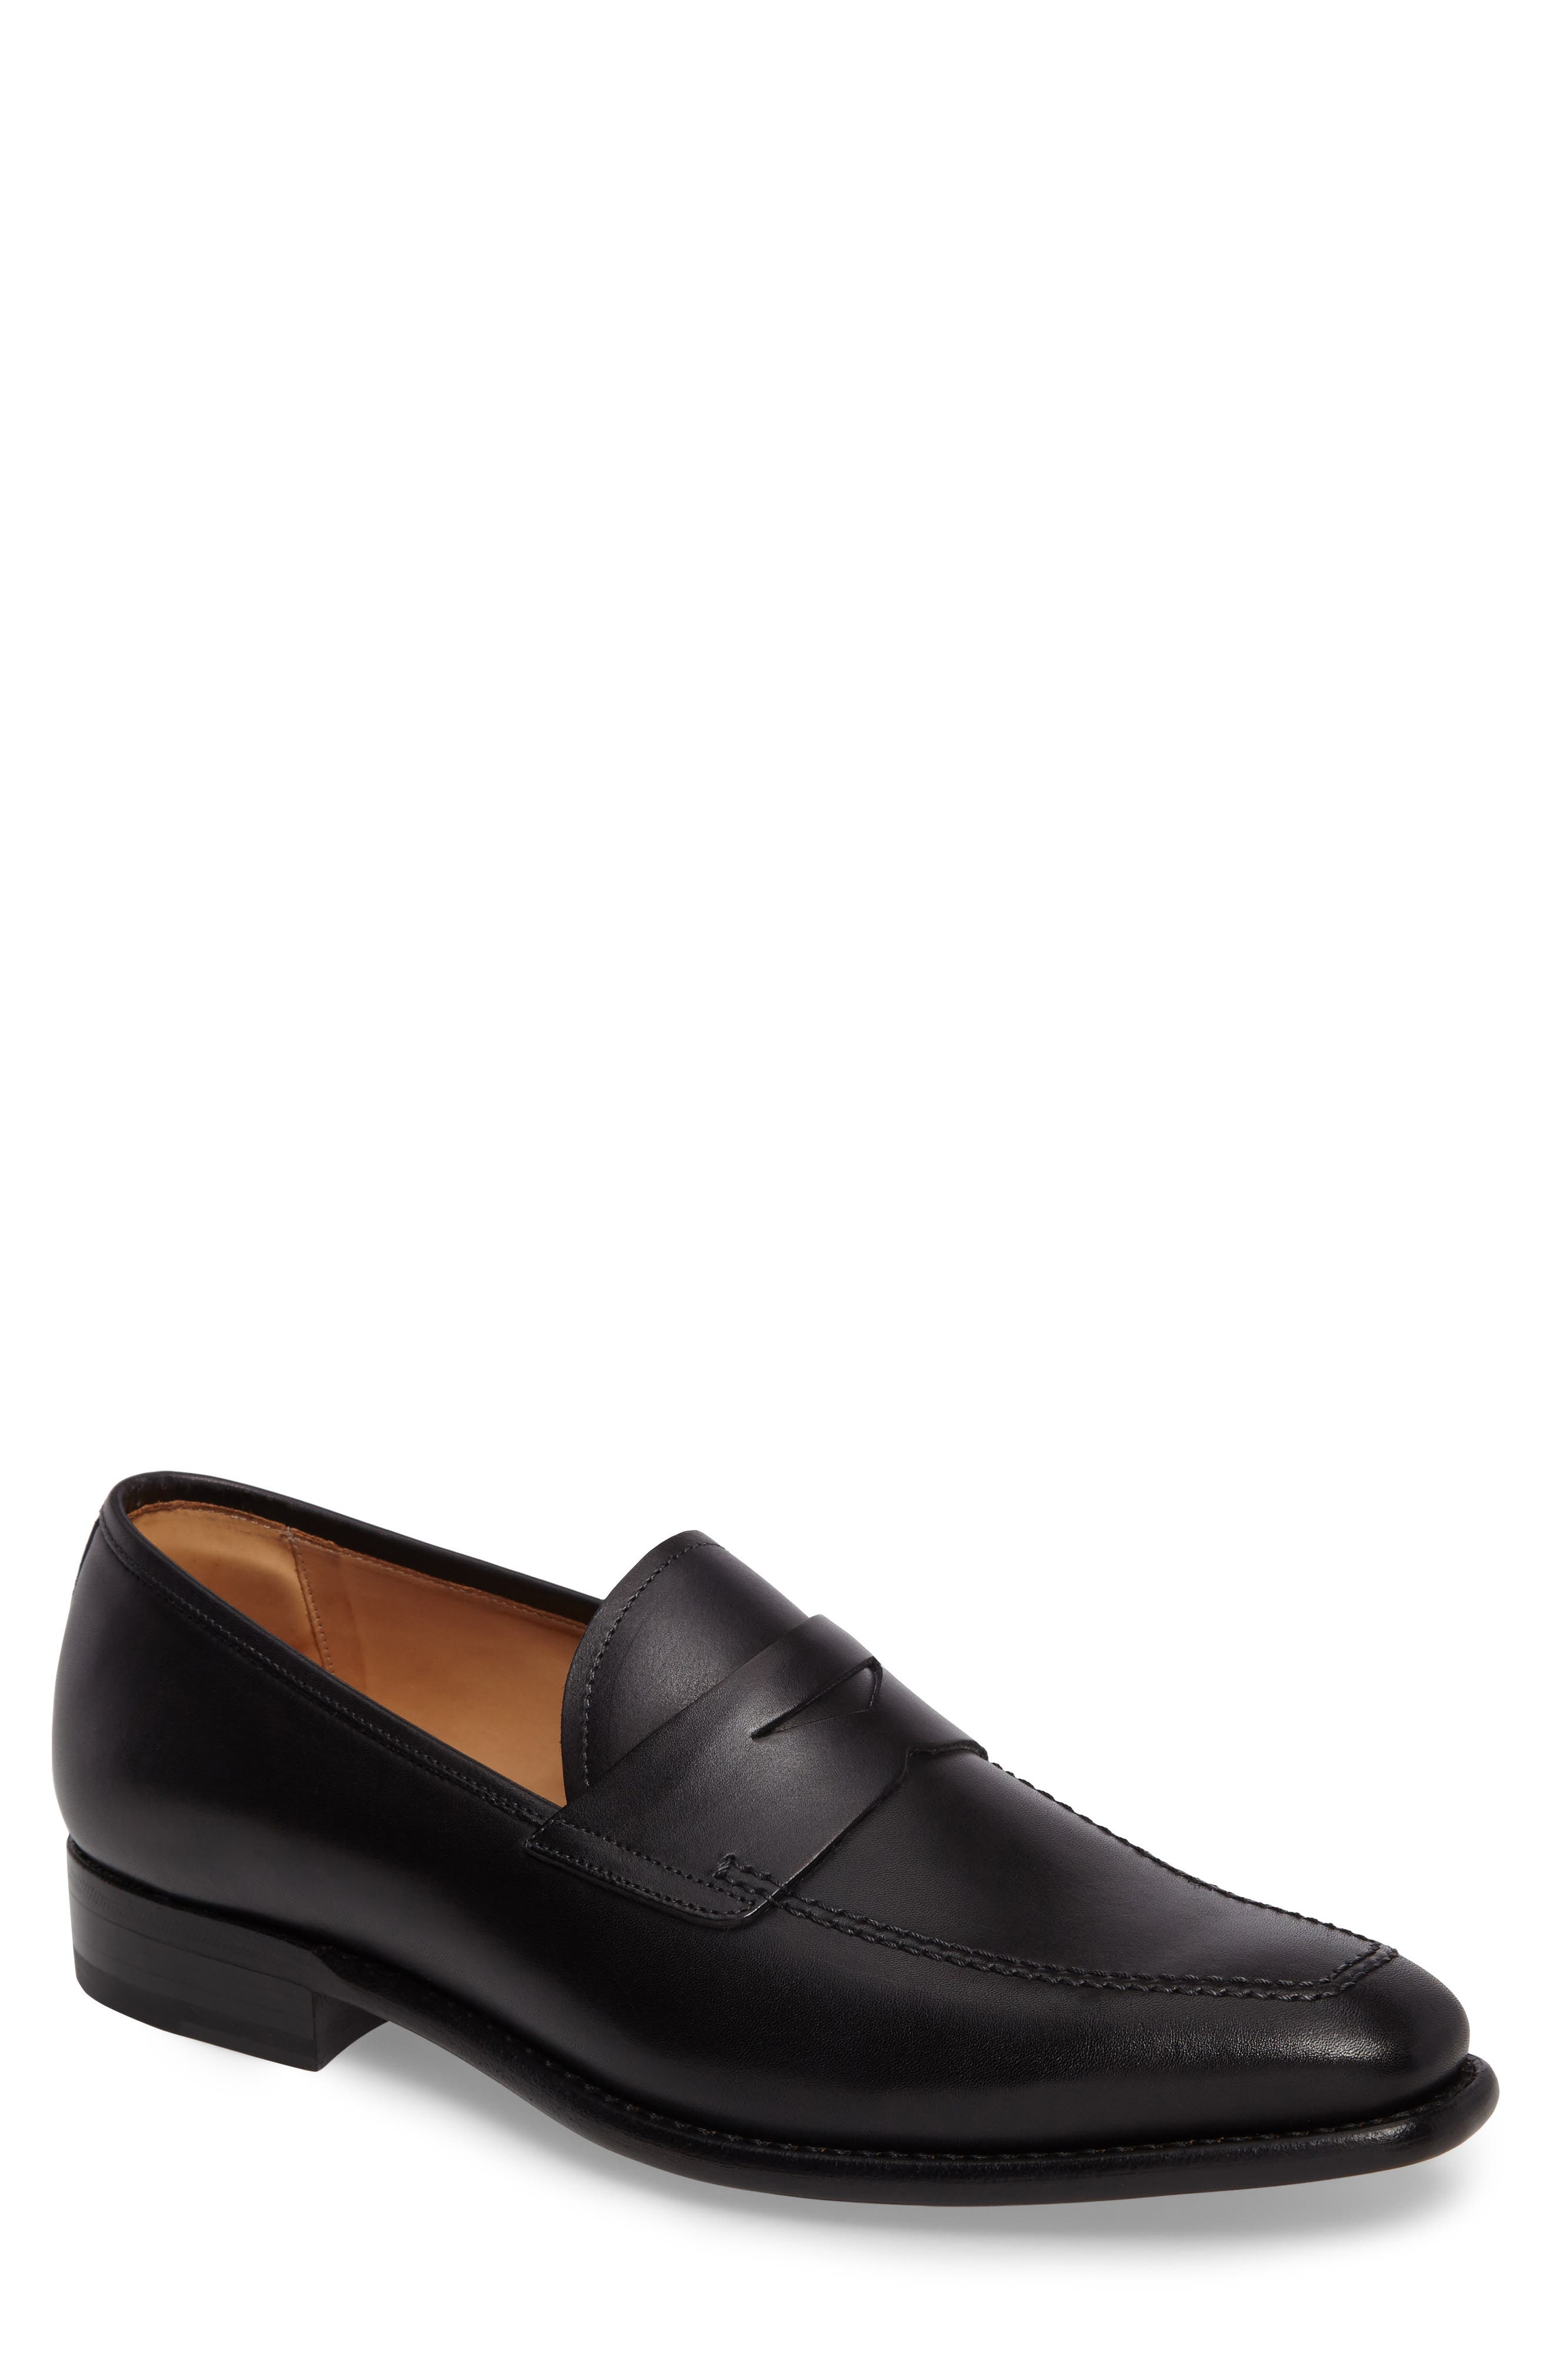 Claude Penny Loafer,                         Main,                         color, 008